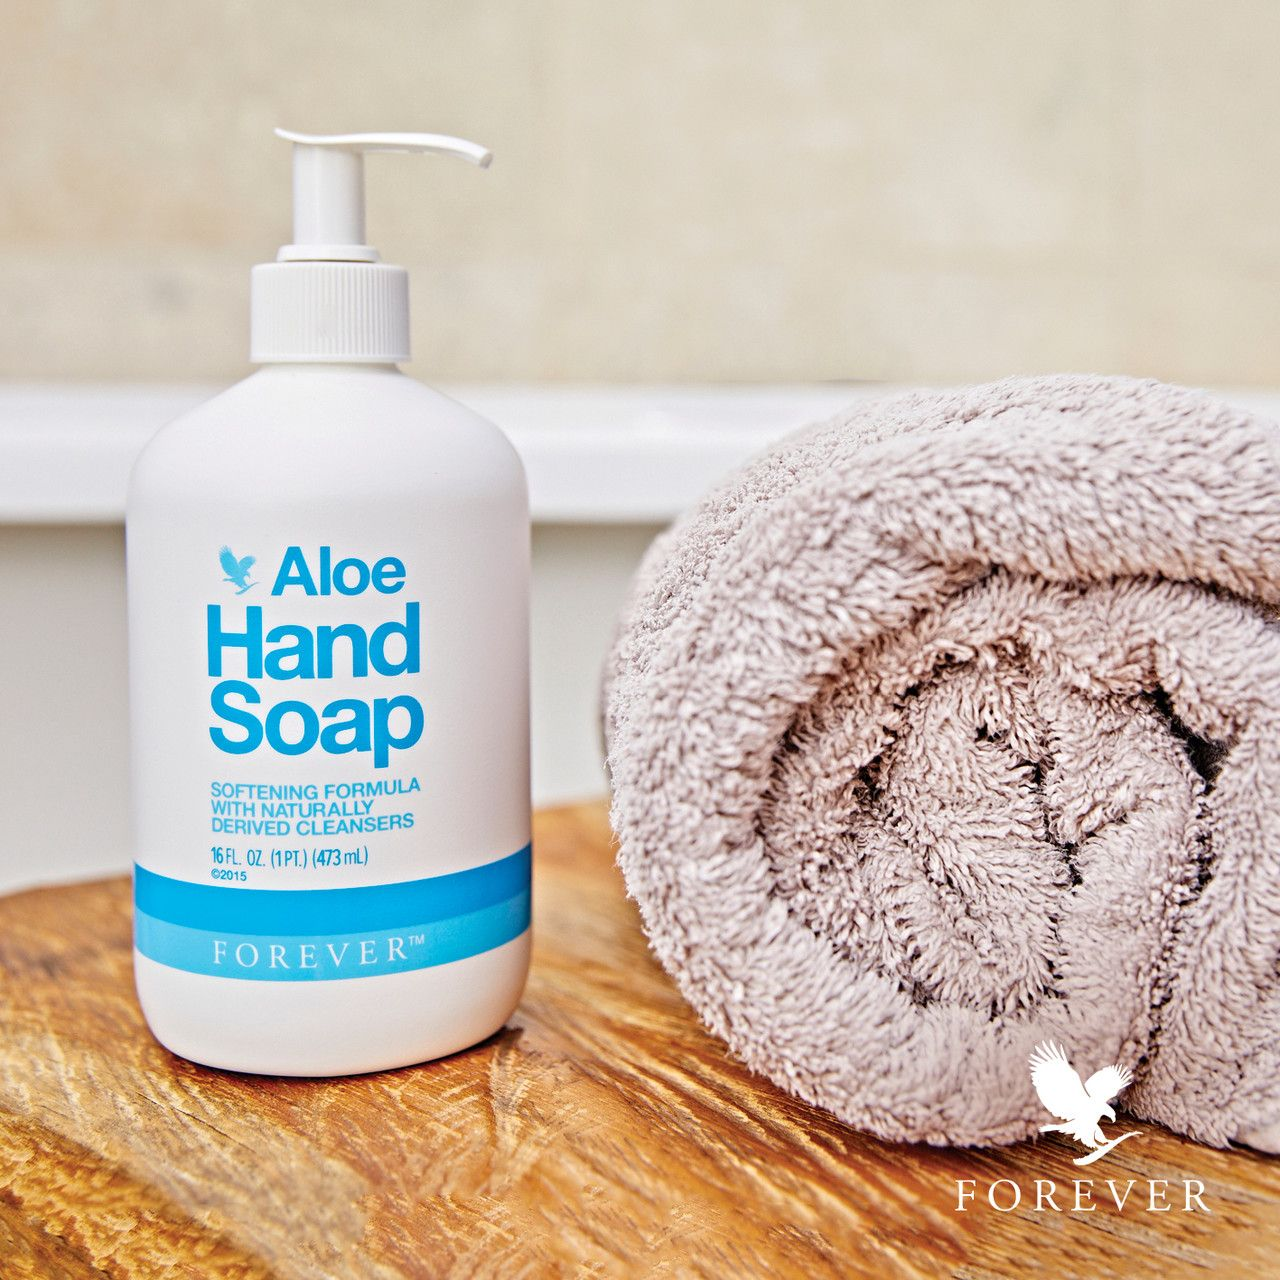 The Delicate Formula Of Forever Aloe Hand Soap Makes It